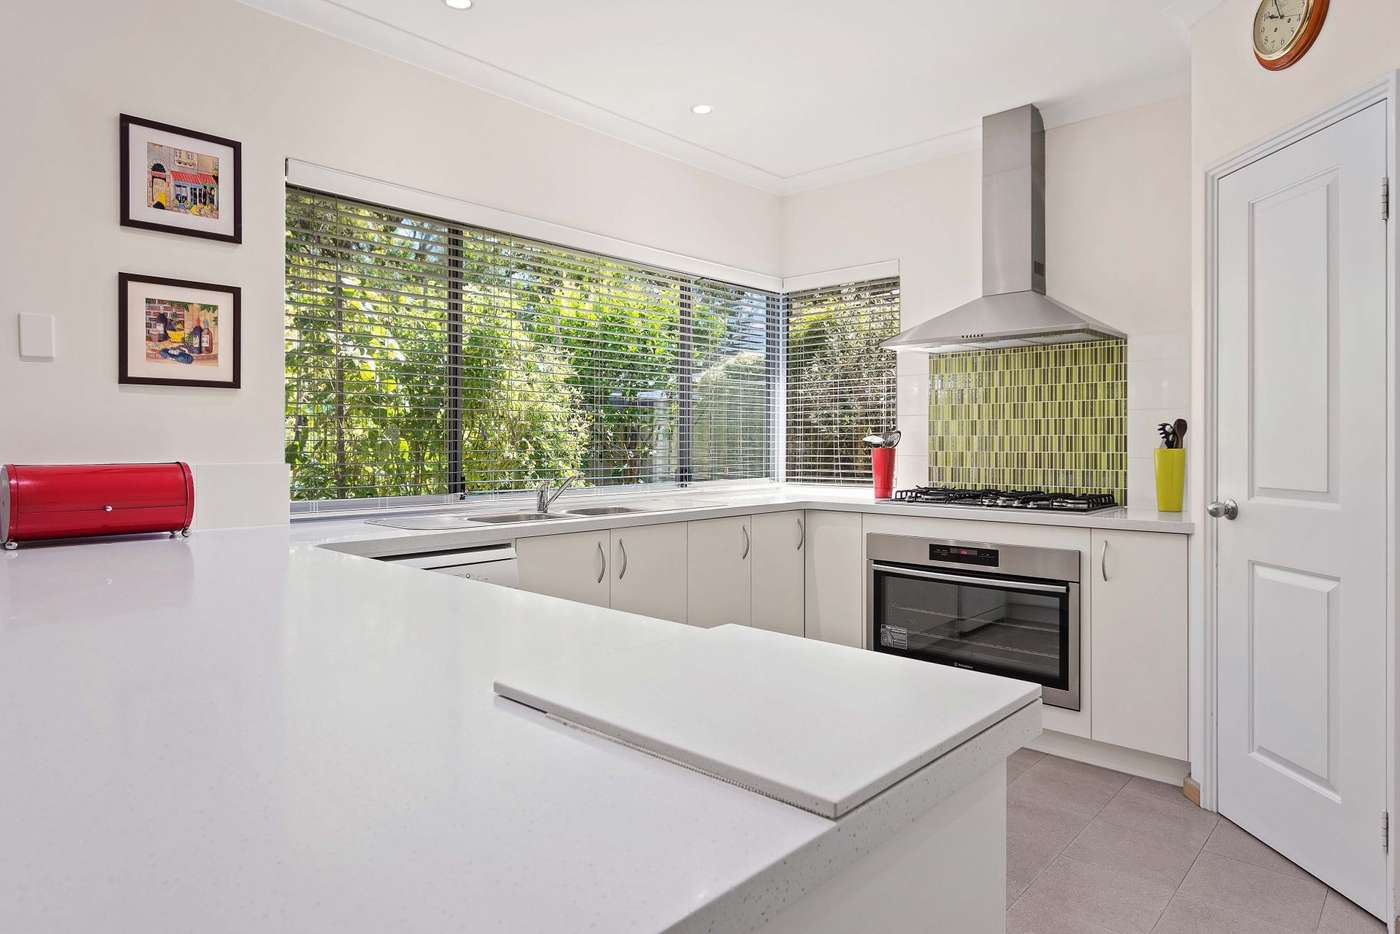 Seventh view of Homely house listing, 59A Fairbairn Rd, Busselton WA 6280